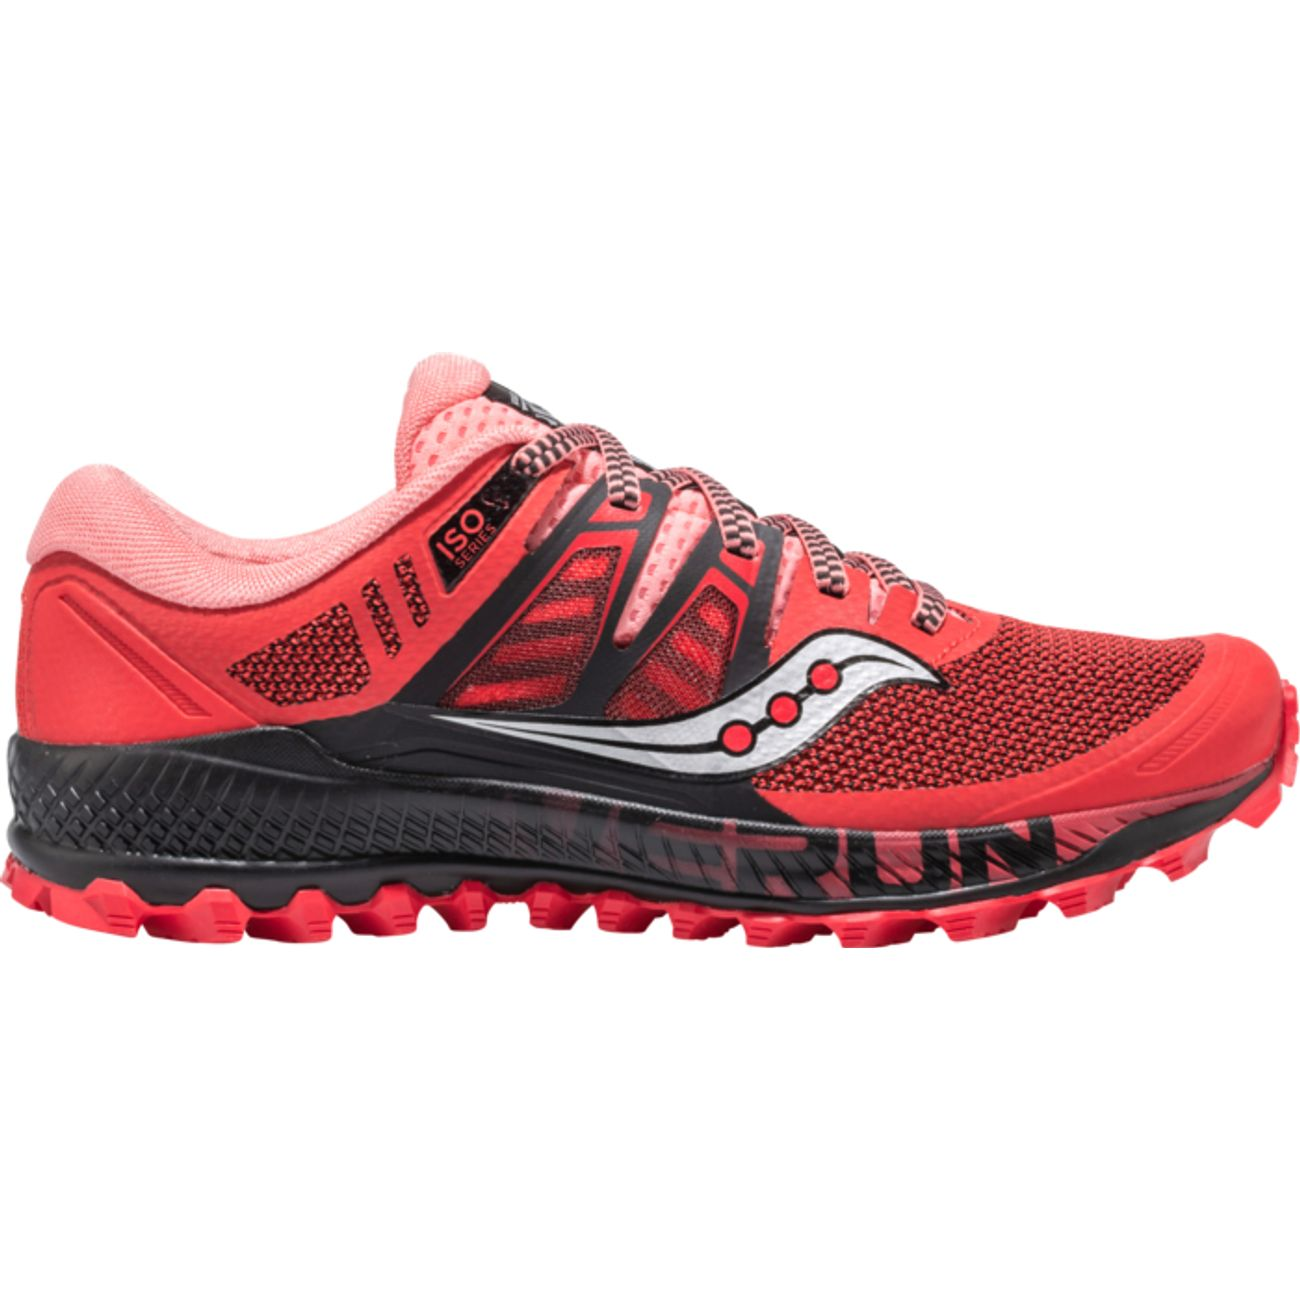 CHAUSSURES BASSES Trail femme SAUCONY PEREGRINE ISO ORANGE 36